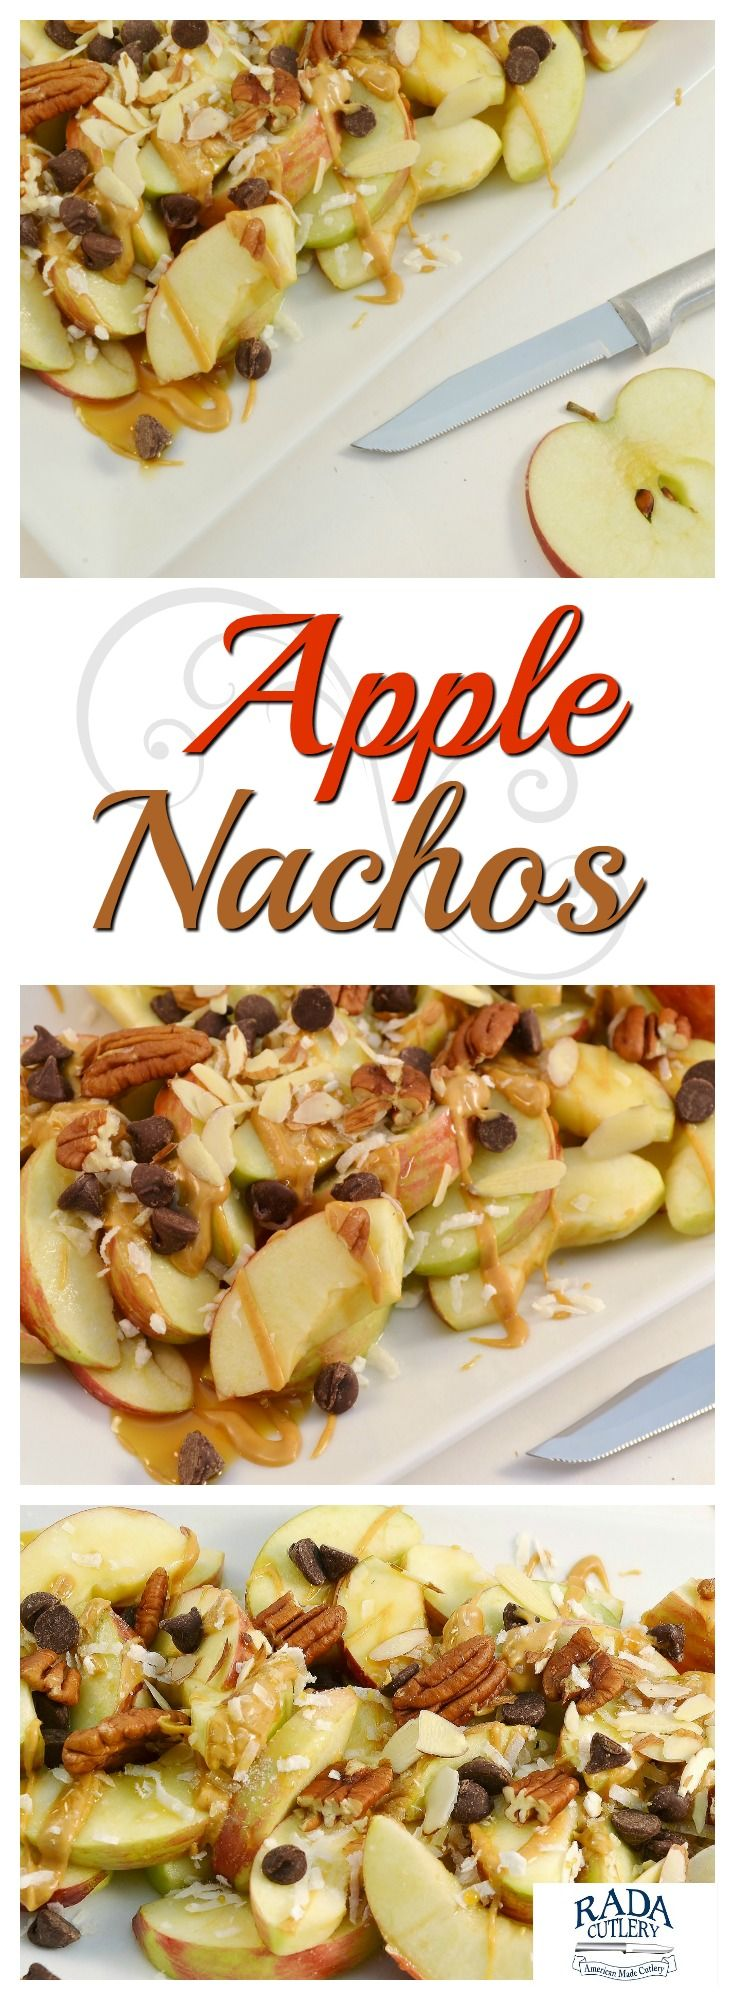 Prepare these Apple Nachos for a healthy twist on a classic snack! This tasty spin on nachos not only tastes wonderful, but is easy to make and with healthy ingredients! #fruit #snack #after #school